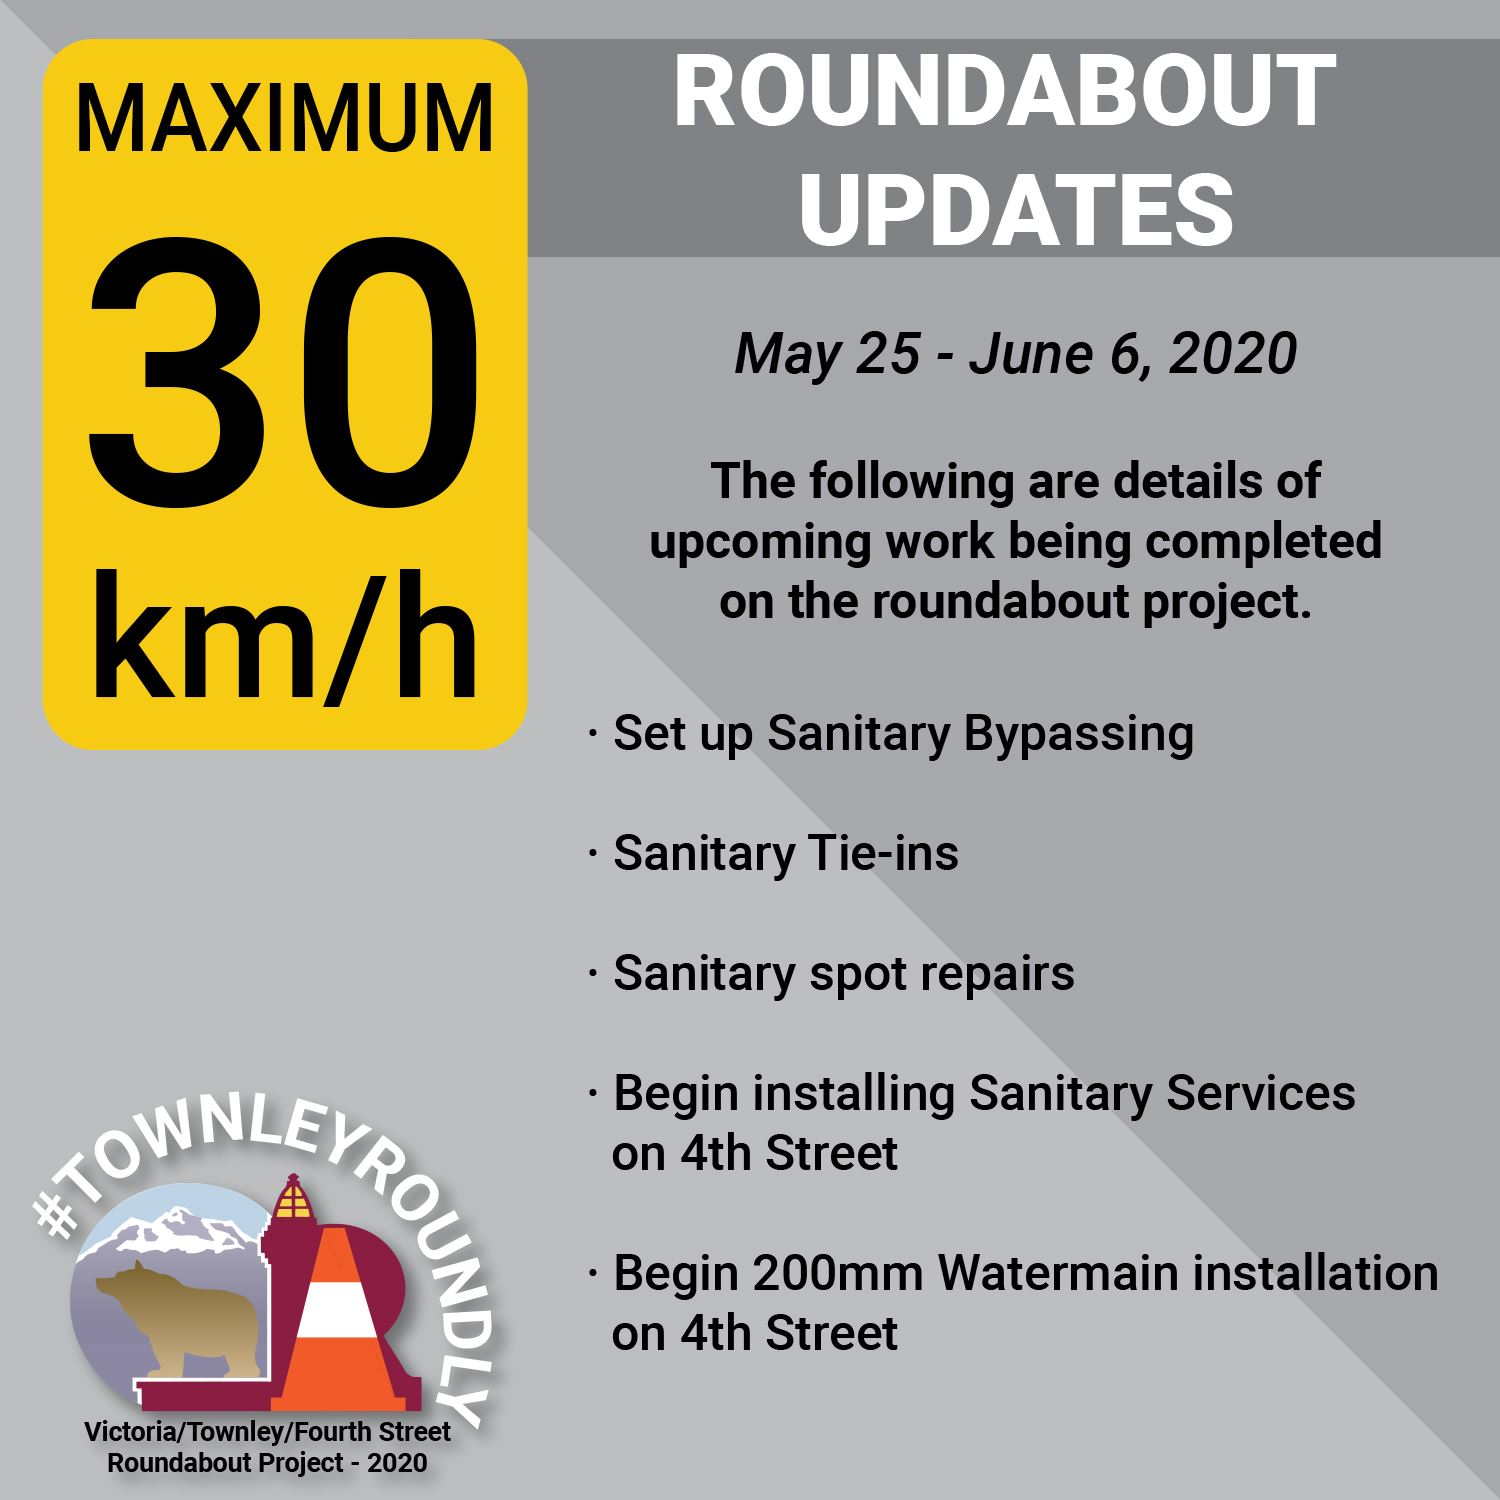 TownleyRoundly 2020_Construction Updates_May 25-June 6